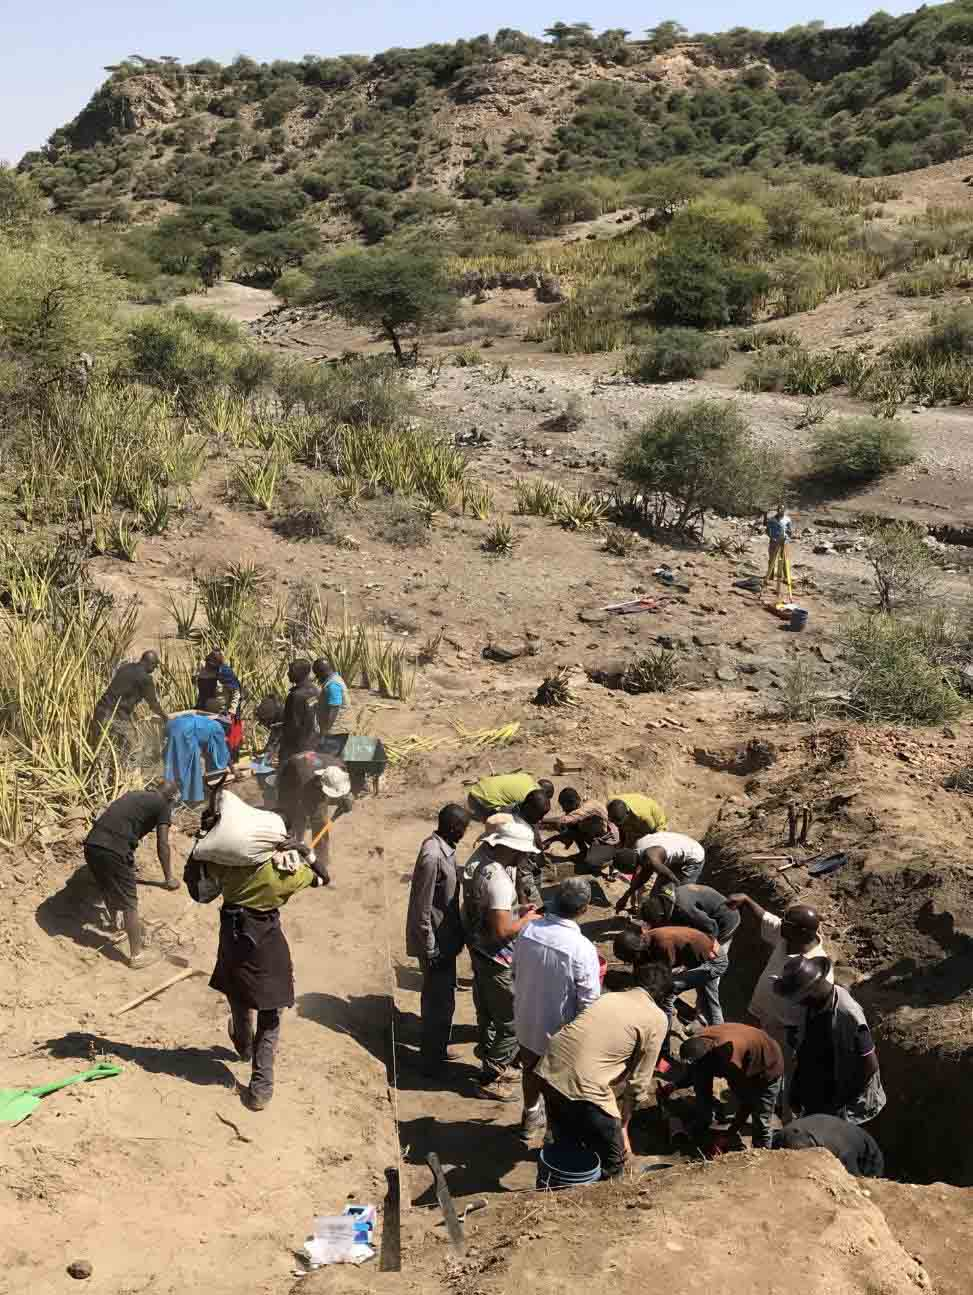 Excavations at Ewass Oldupa uncovered the oldest Oldowan stone tools ever found at Oldupai Gorge, dating to ~2 million years ago, and also unearthed fossils of mammals, reptiles and birds. (Michael Petraglia)